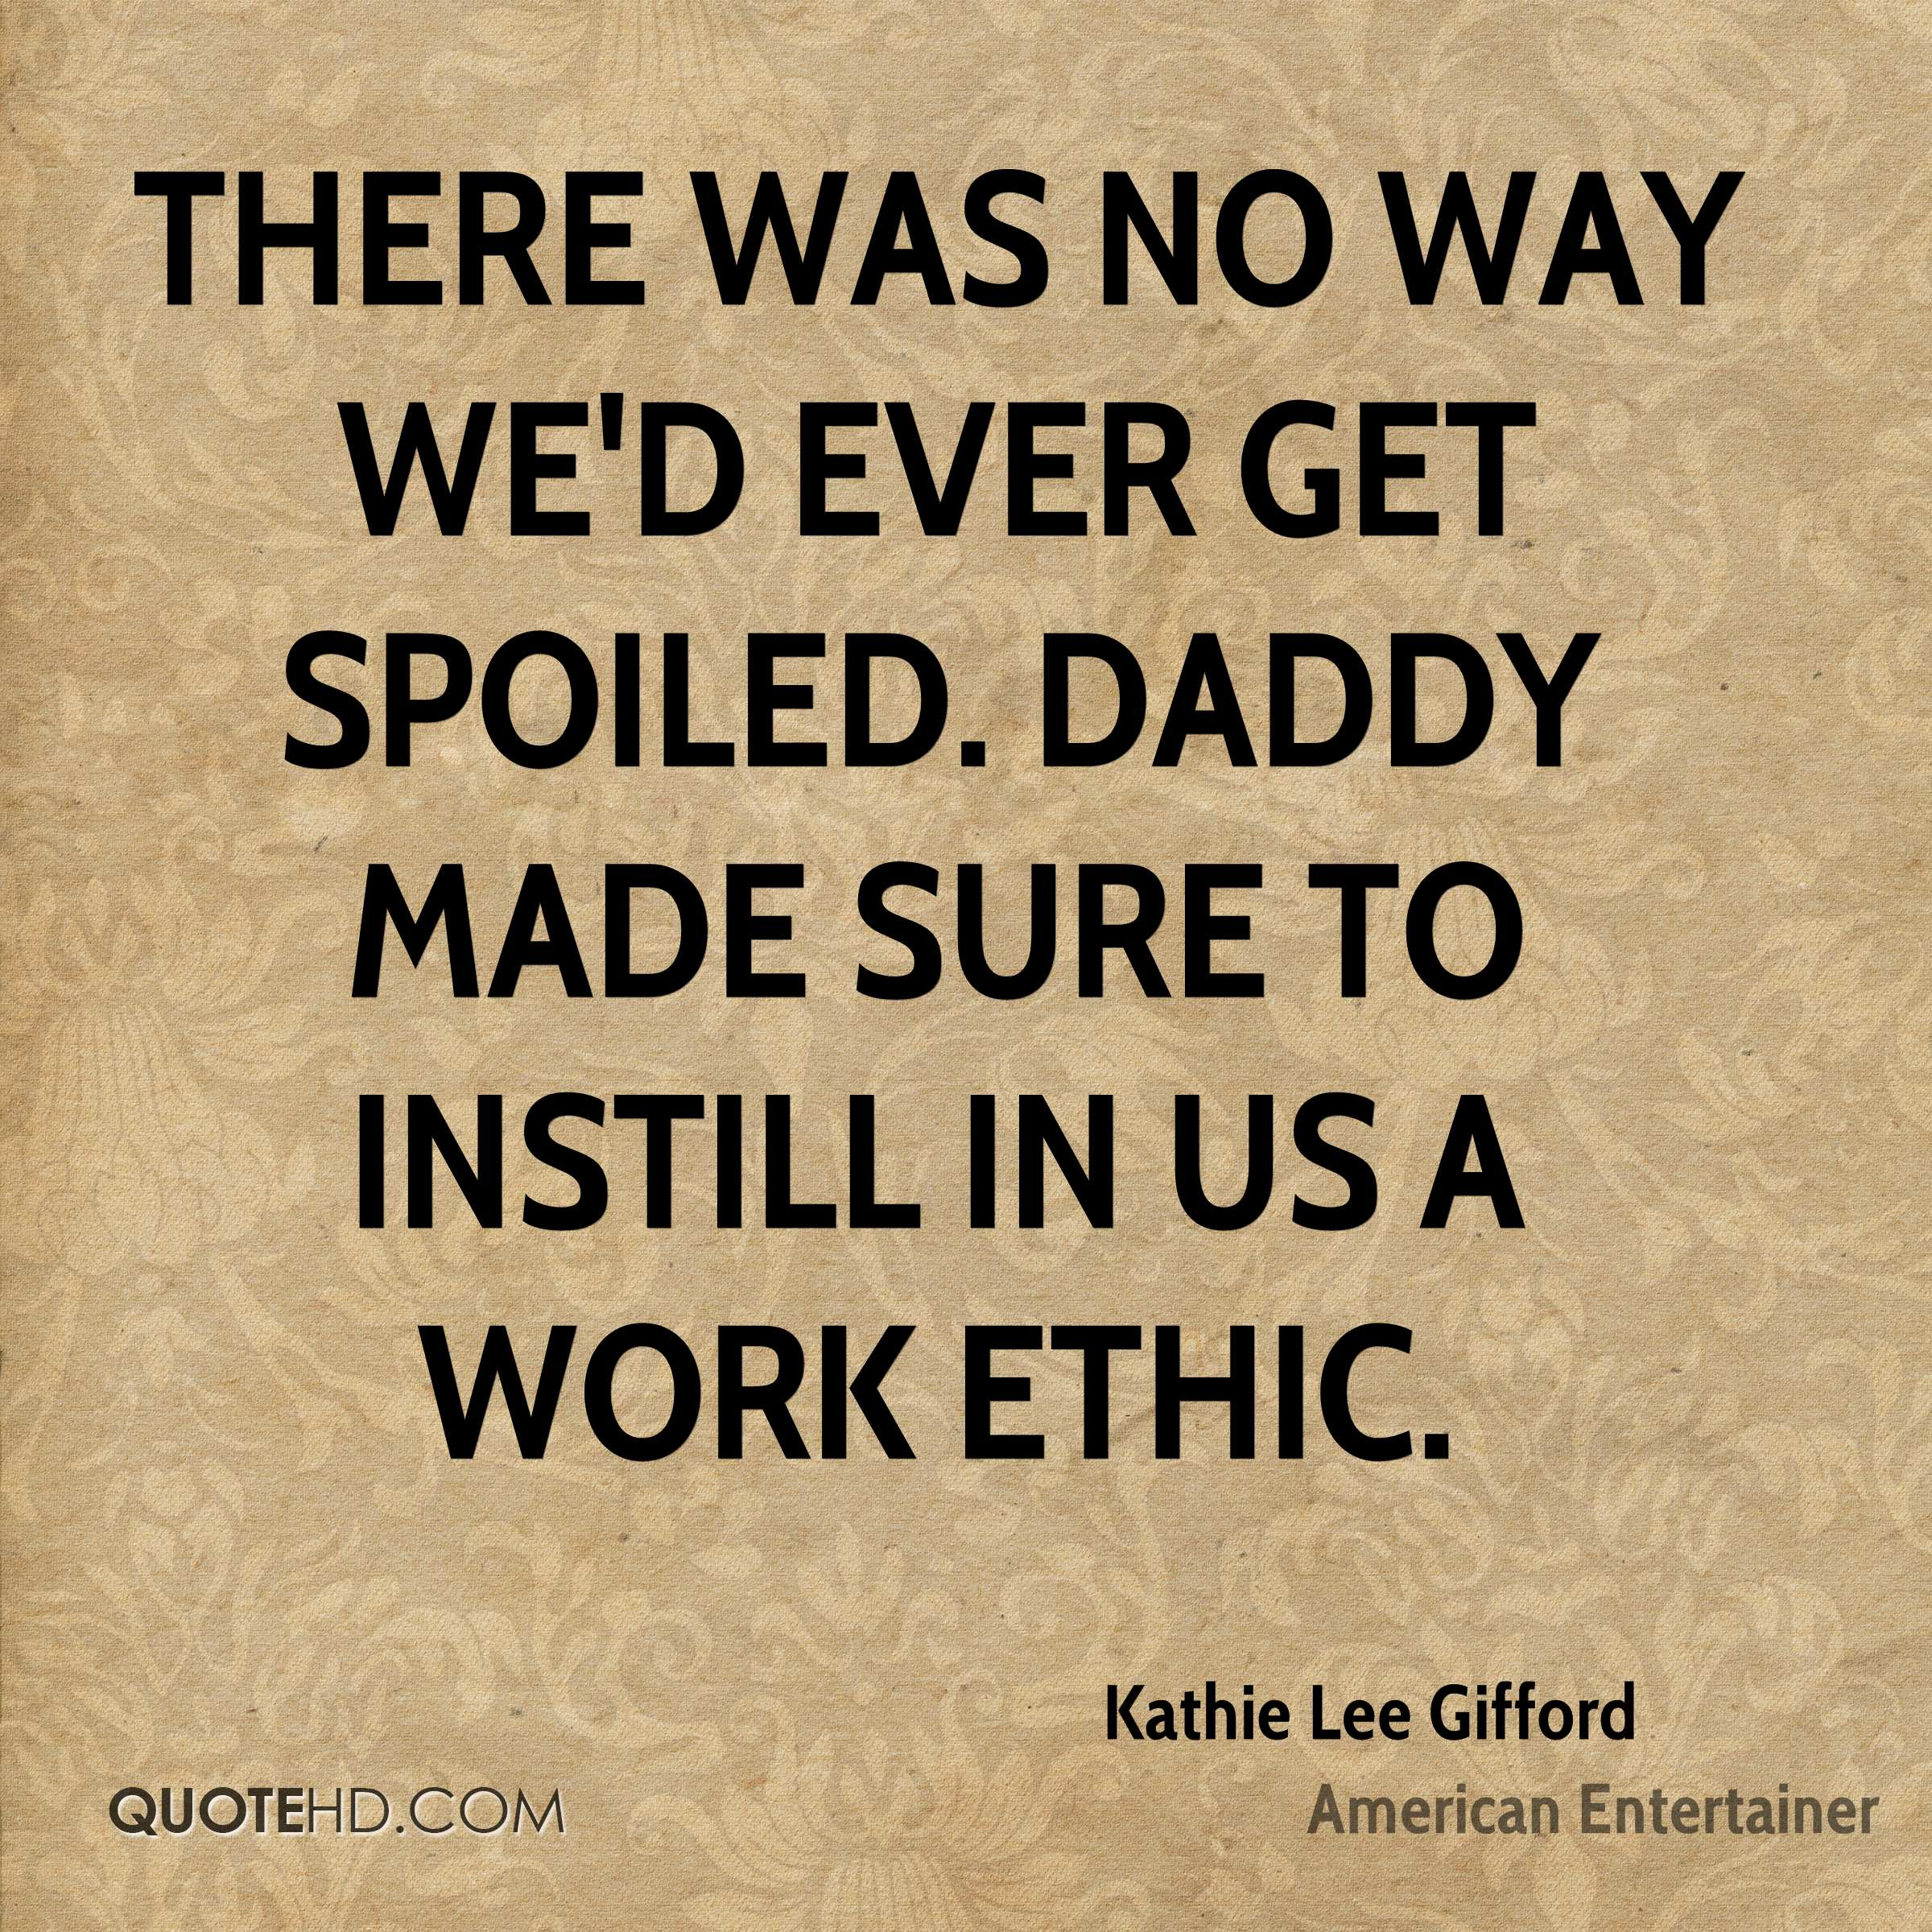 Work Ethic Quotes And Sayings: Kathie Lee Gifford Quotes